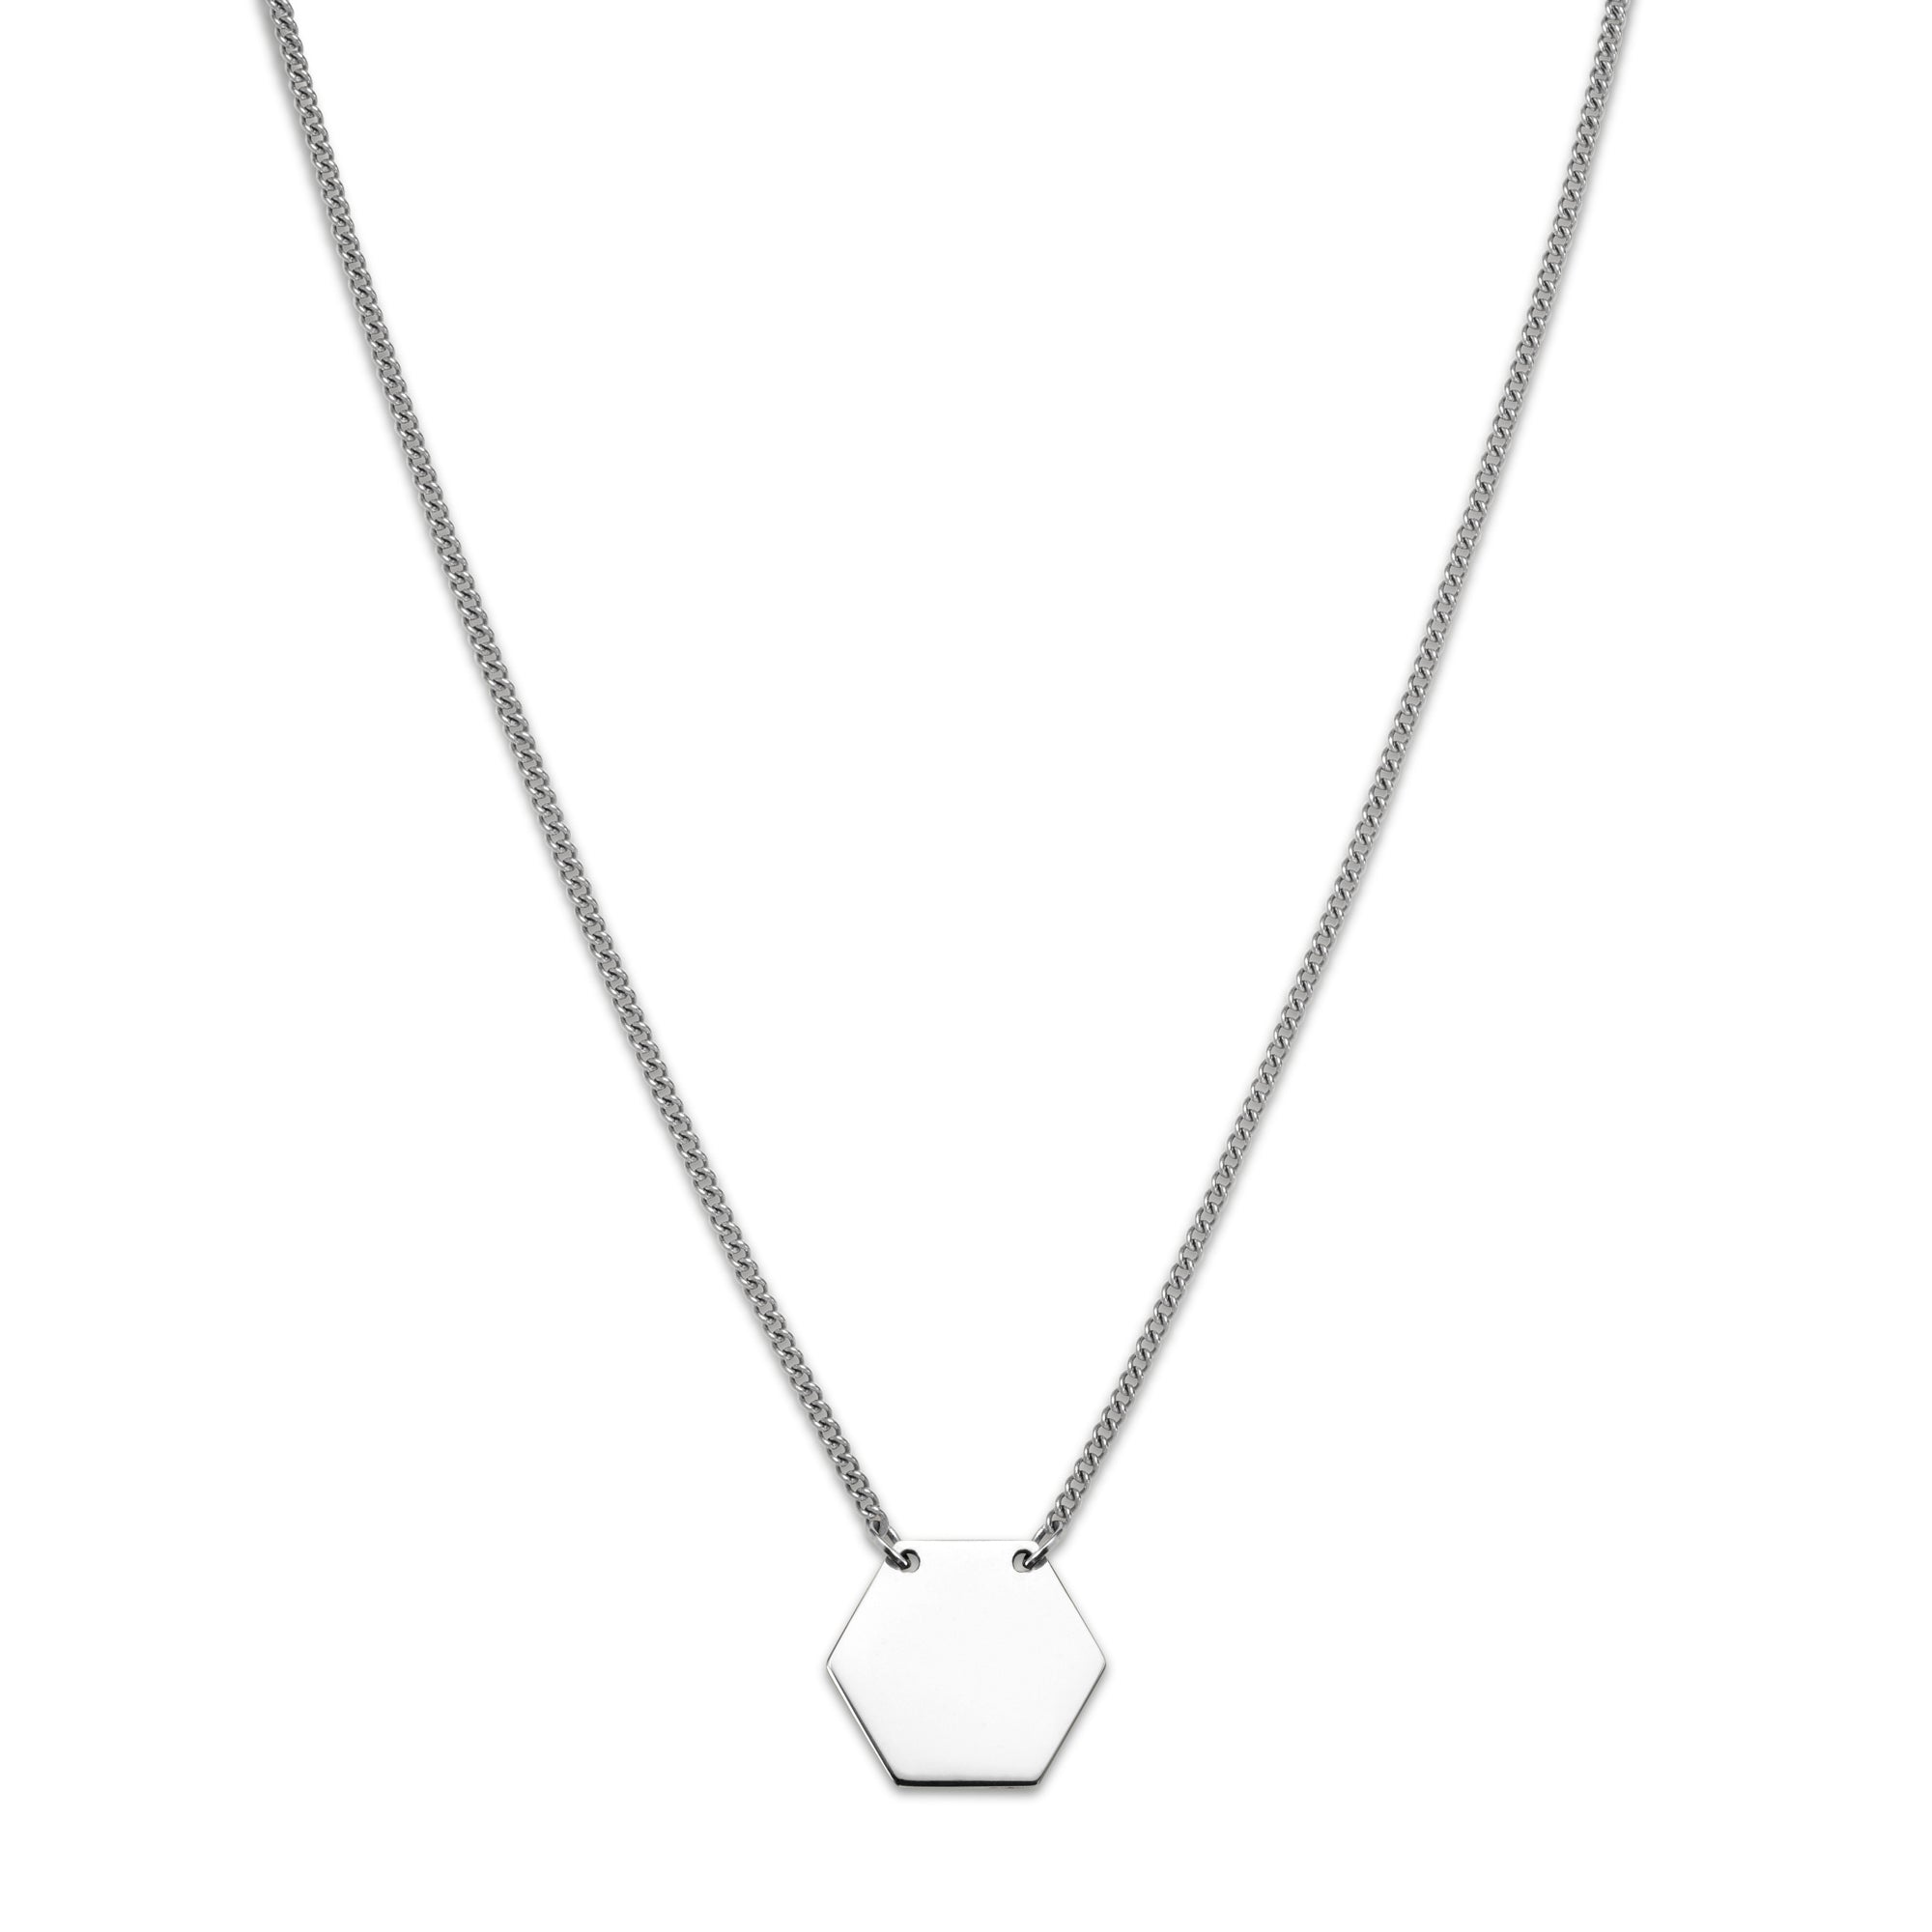 LIBRI NECKLACE Silver